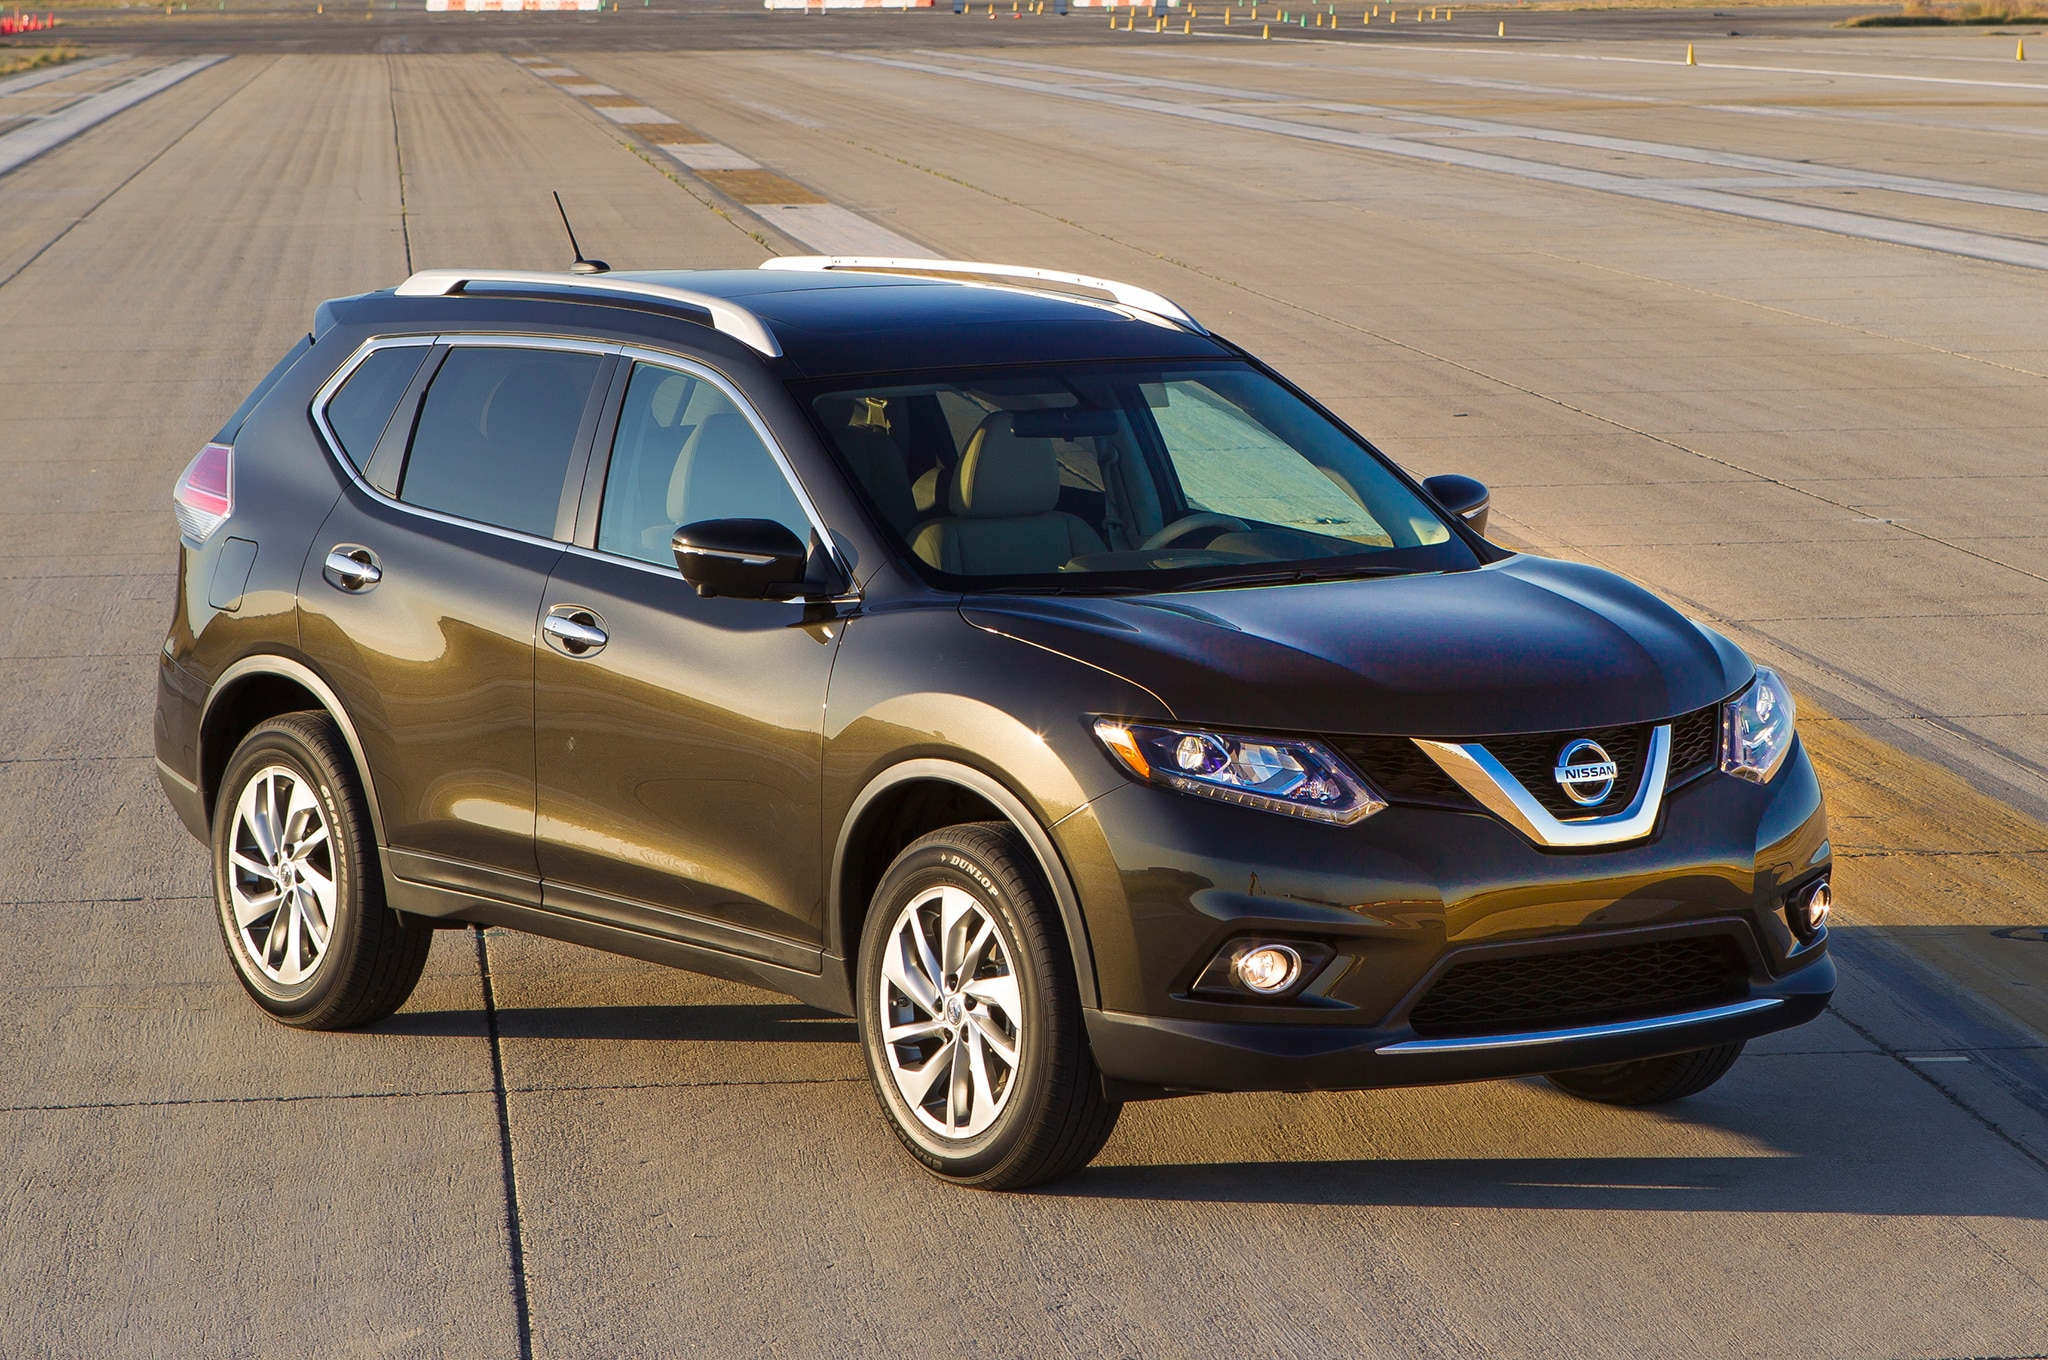 Nissan Dealers In Delaware >> Recalls: Ford Escape, Explorer, Taurus; Nissan Rogue - Automobile